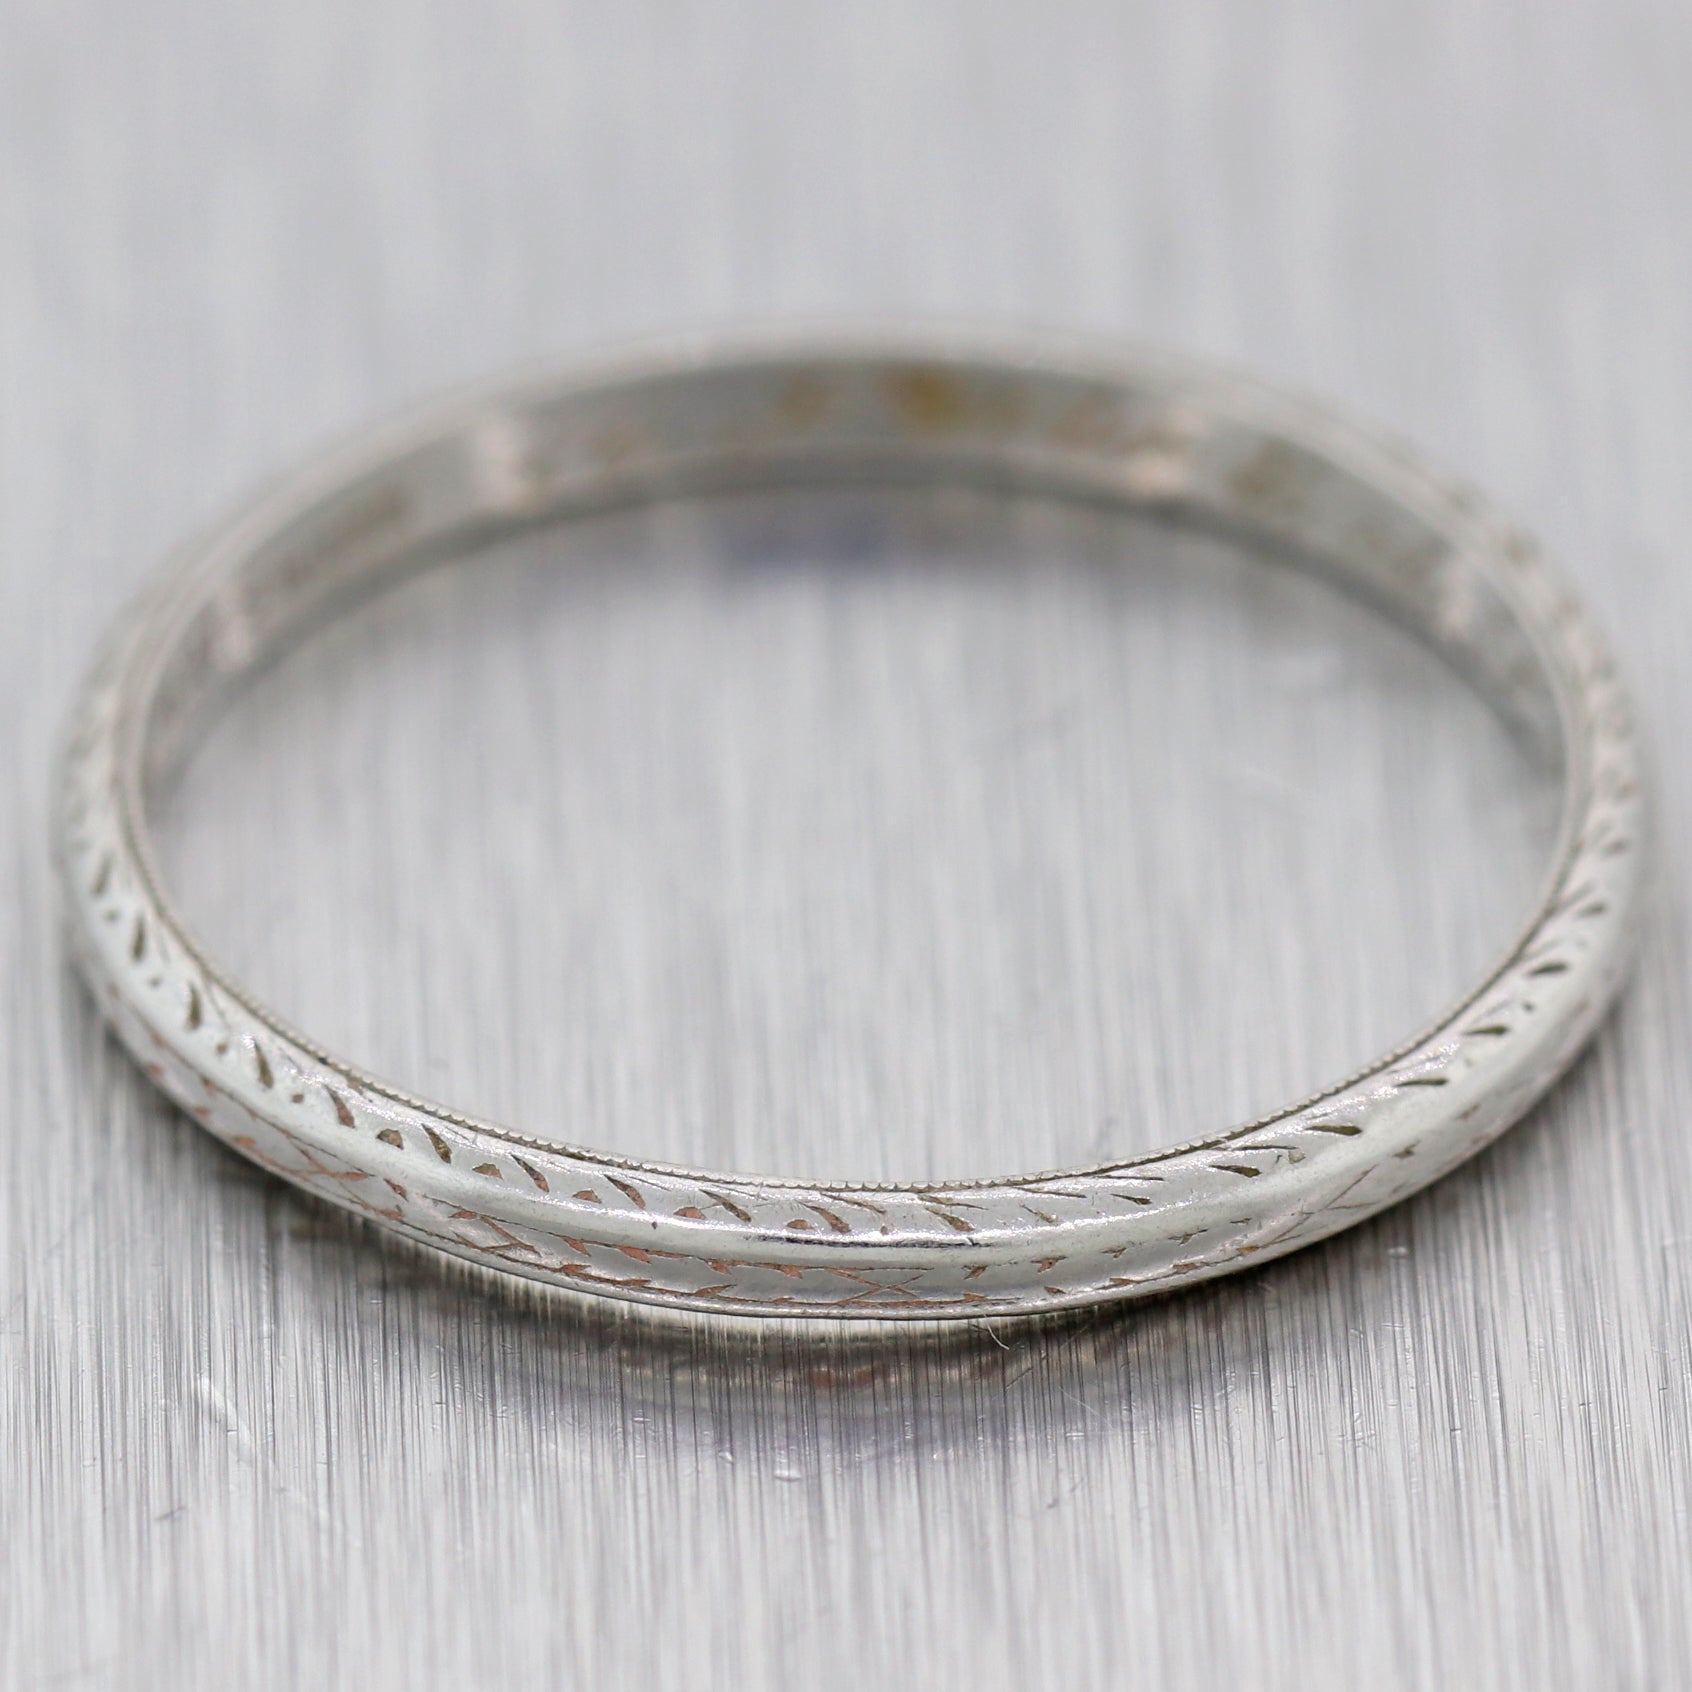 1920s Antique Art Deco Estate Platinum 1mm Engraved Wedding Band Ring N8